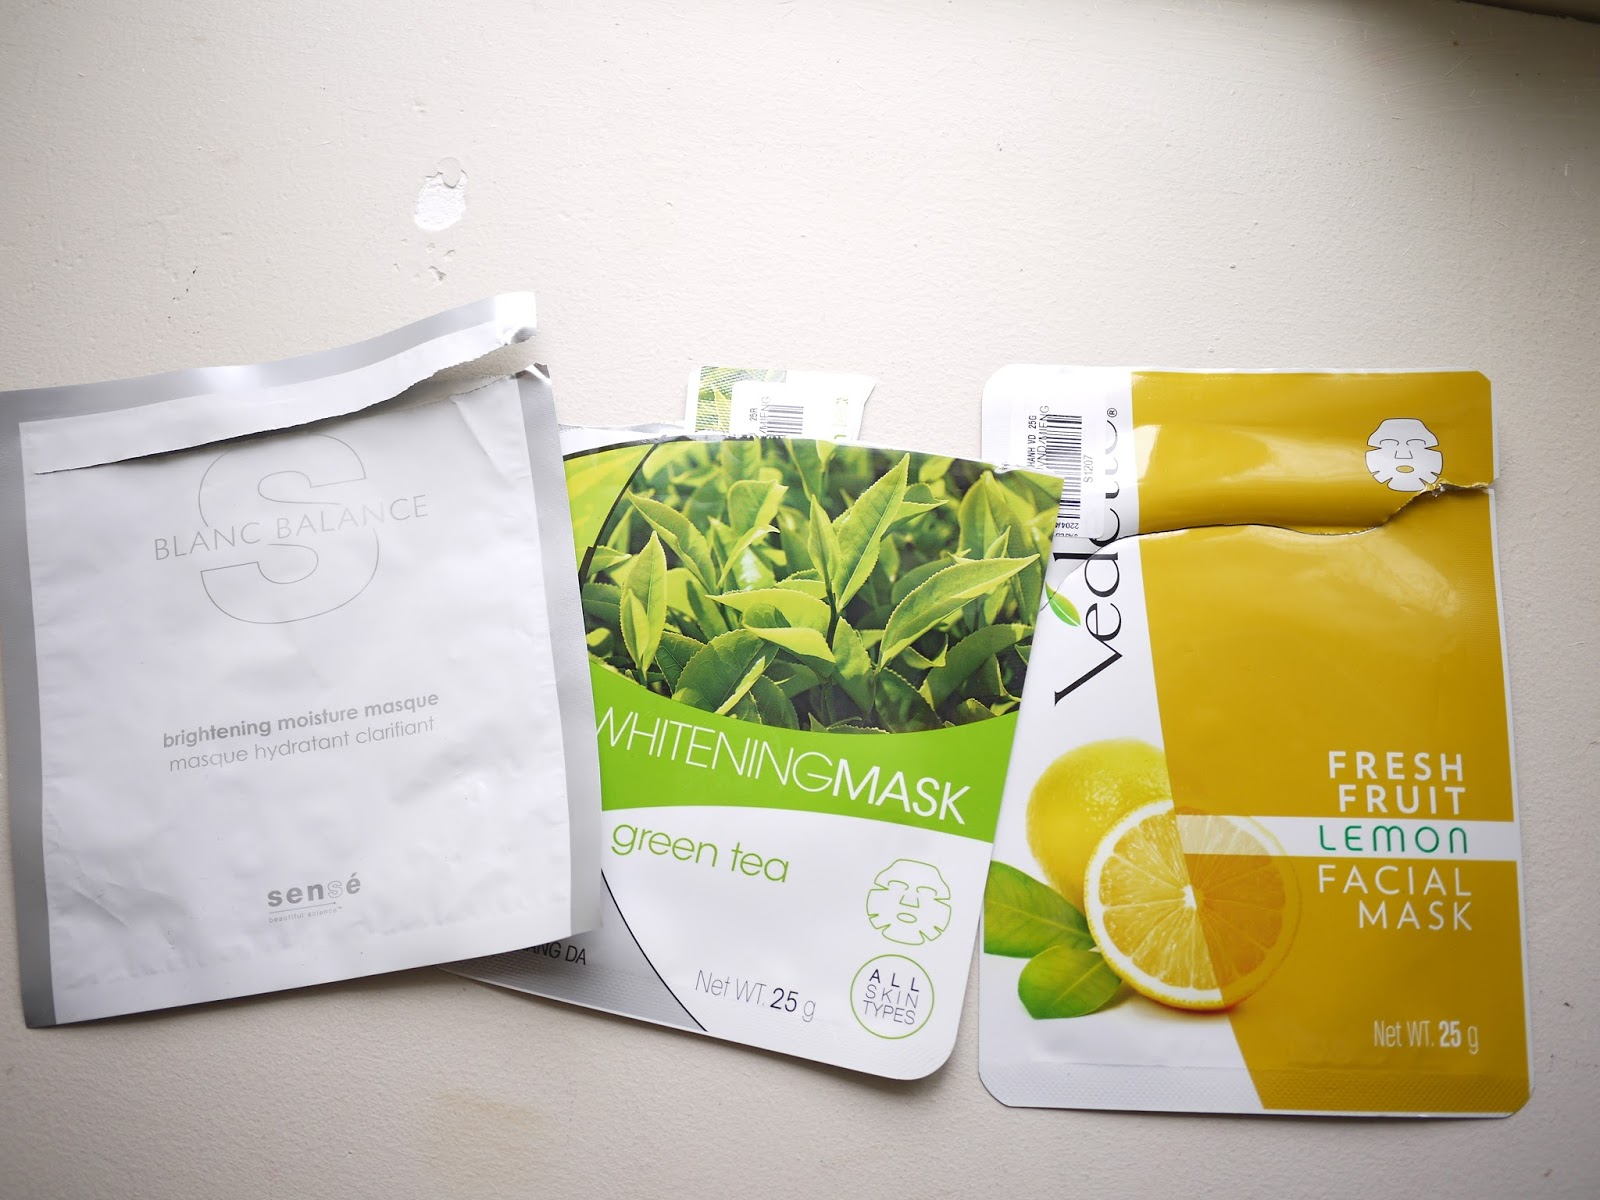 Sense blanc balance mask vedette whitening green tea mask vedette fresh fruit lemon facial mask review